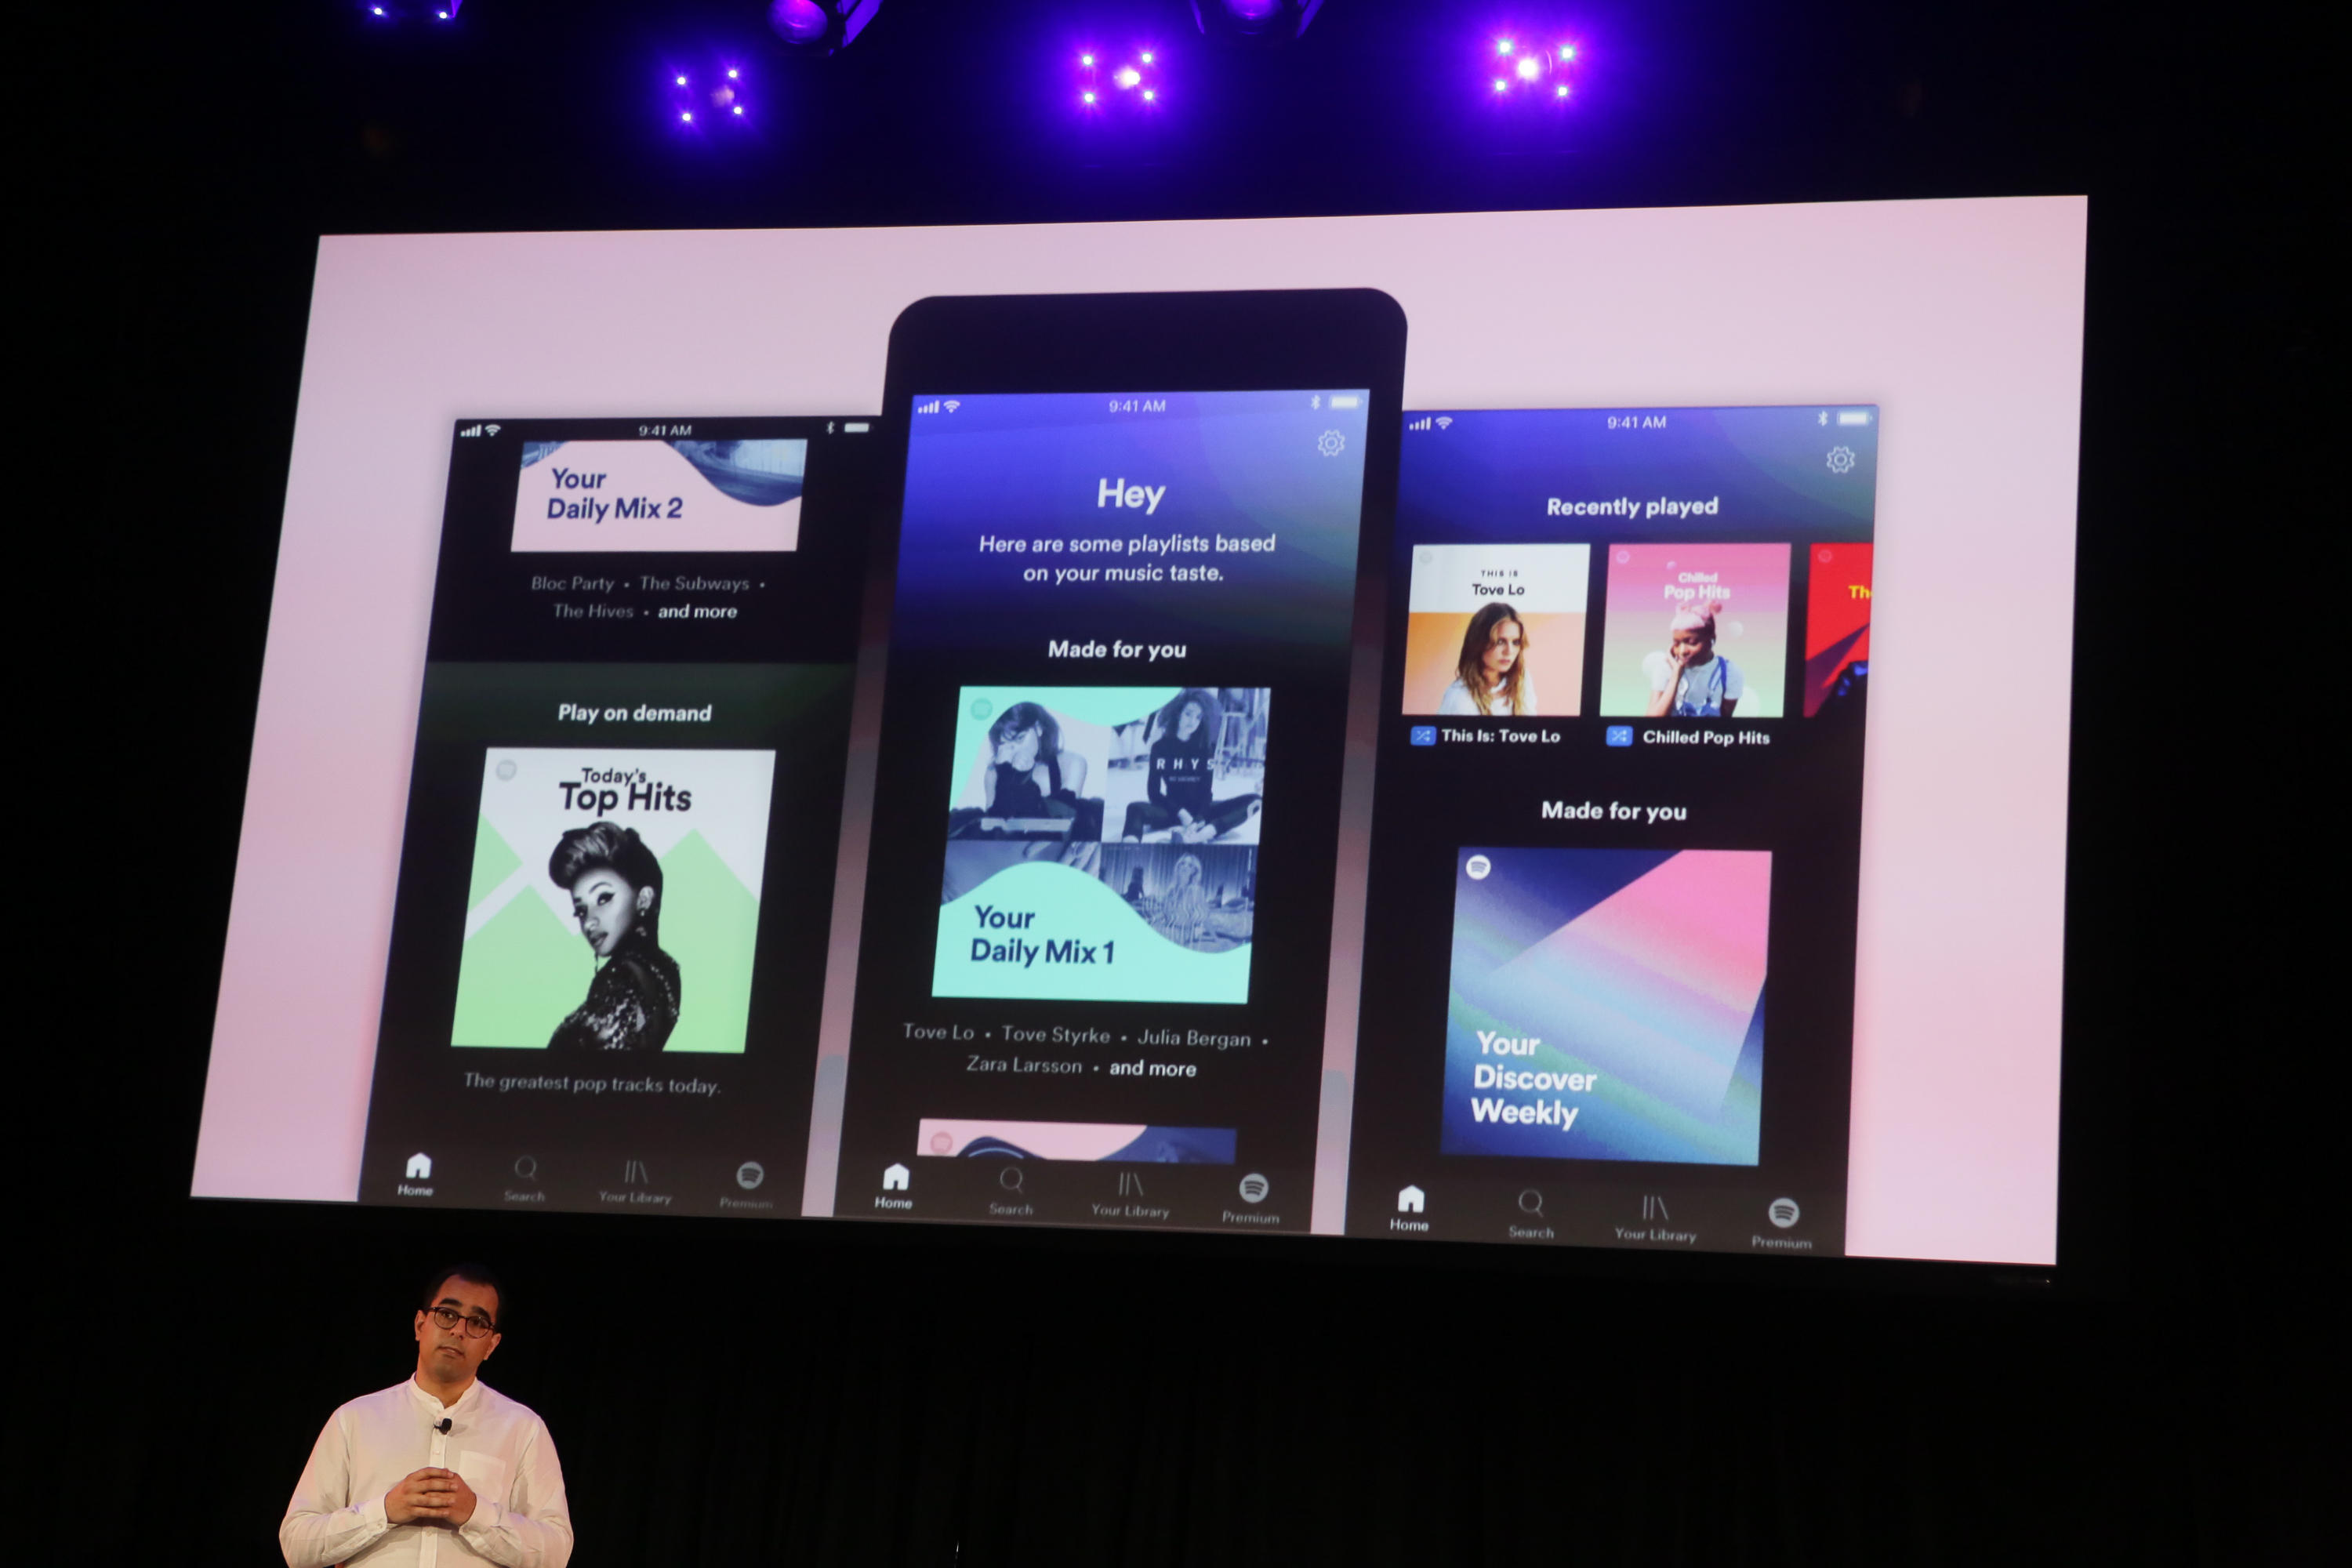 Spotify executive Babar Zafar on stage in front of screenshots of Spotify's new app